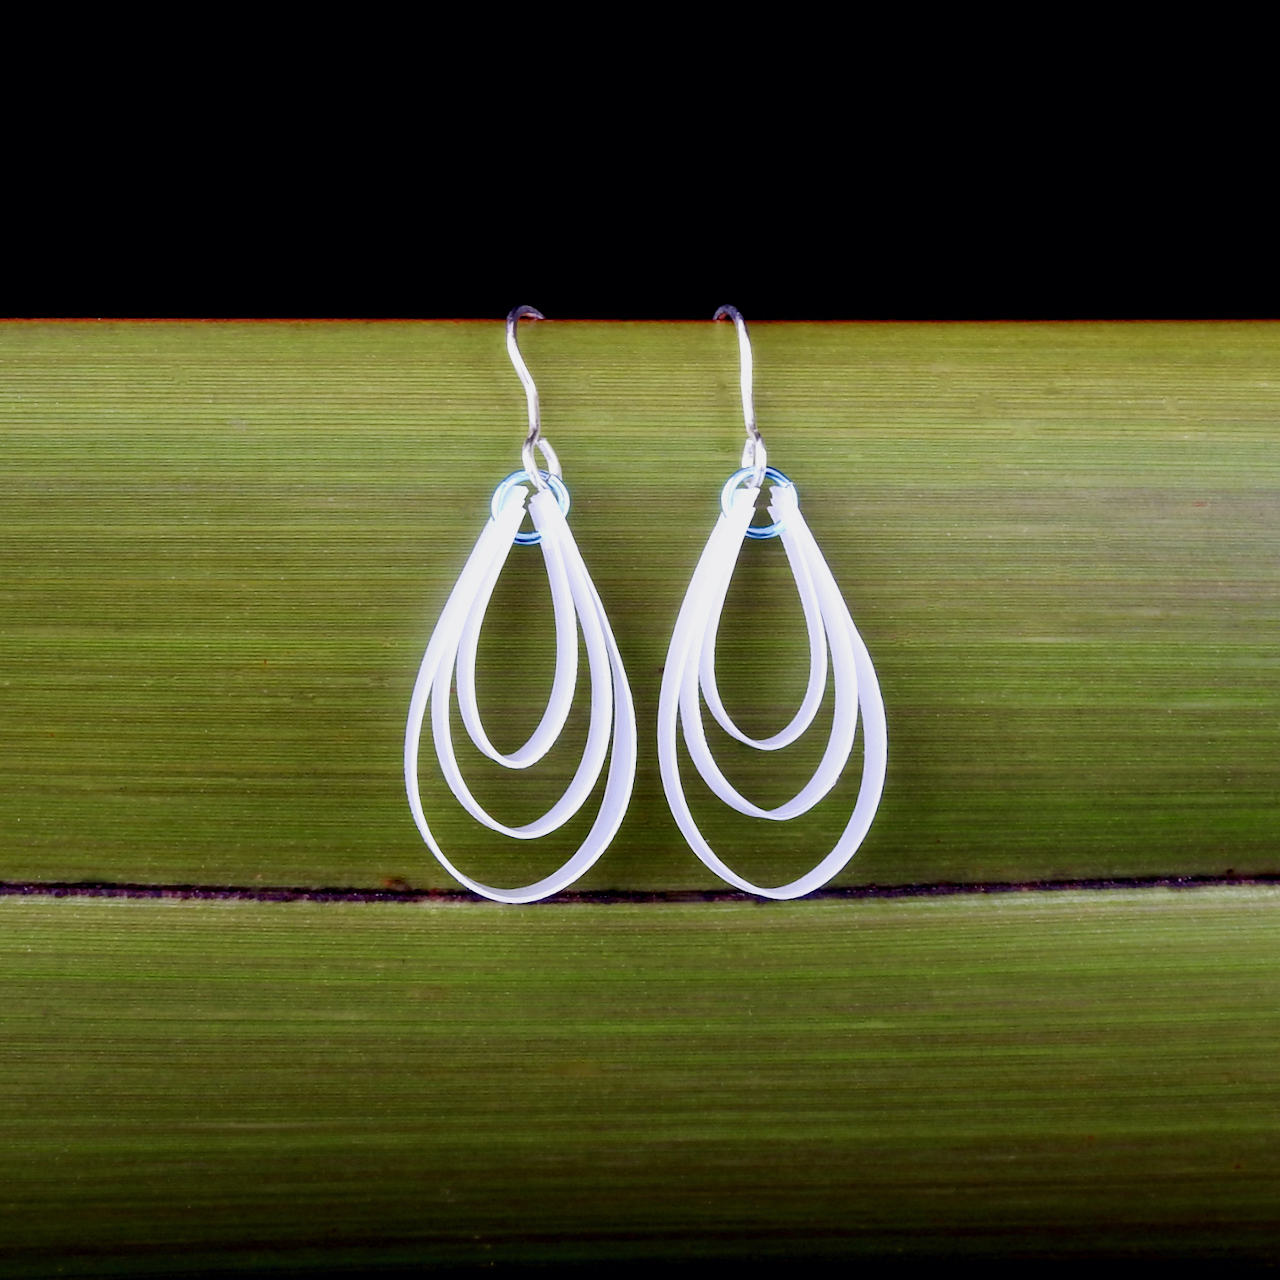 Water Droplets made from recycled Sterling Silver and repurposed plastic milk bottles